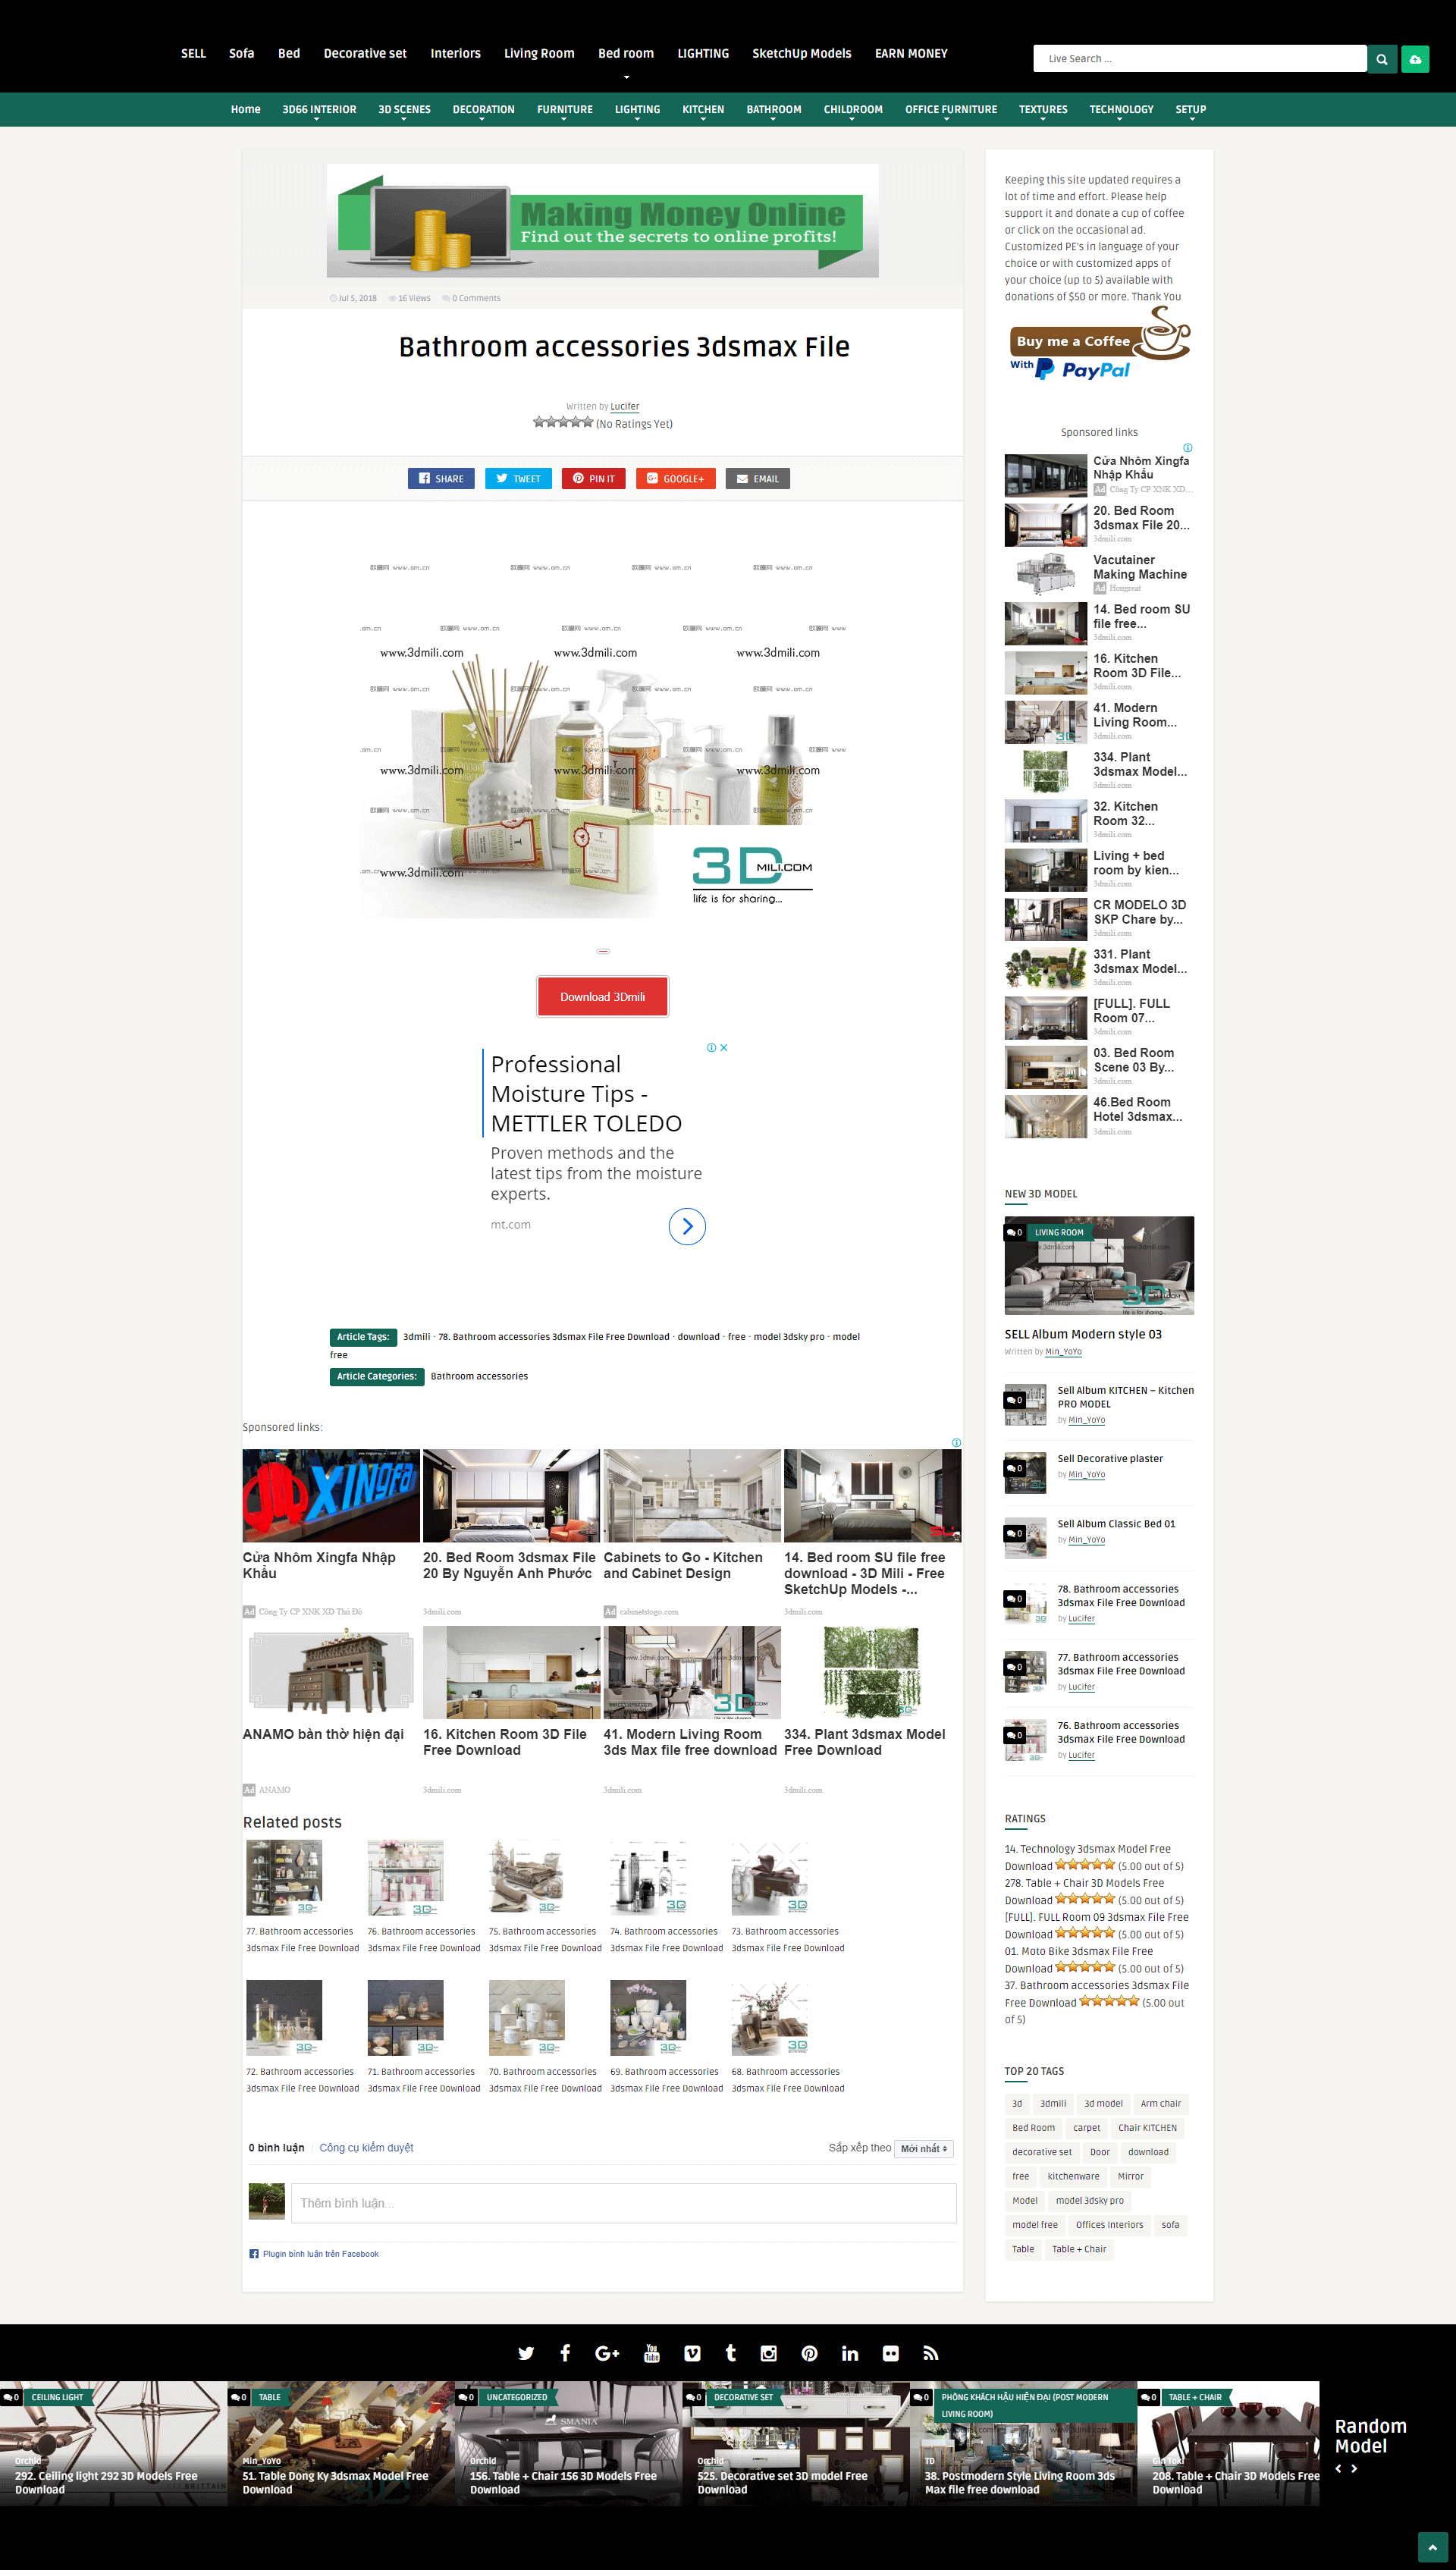 Help me! LAYOUT ENCOURAGES ACCIDENTAL CLICKS - AdSense Help